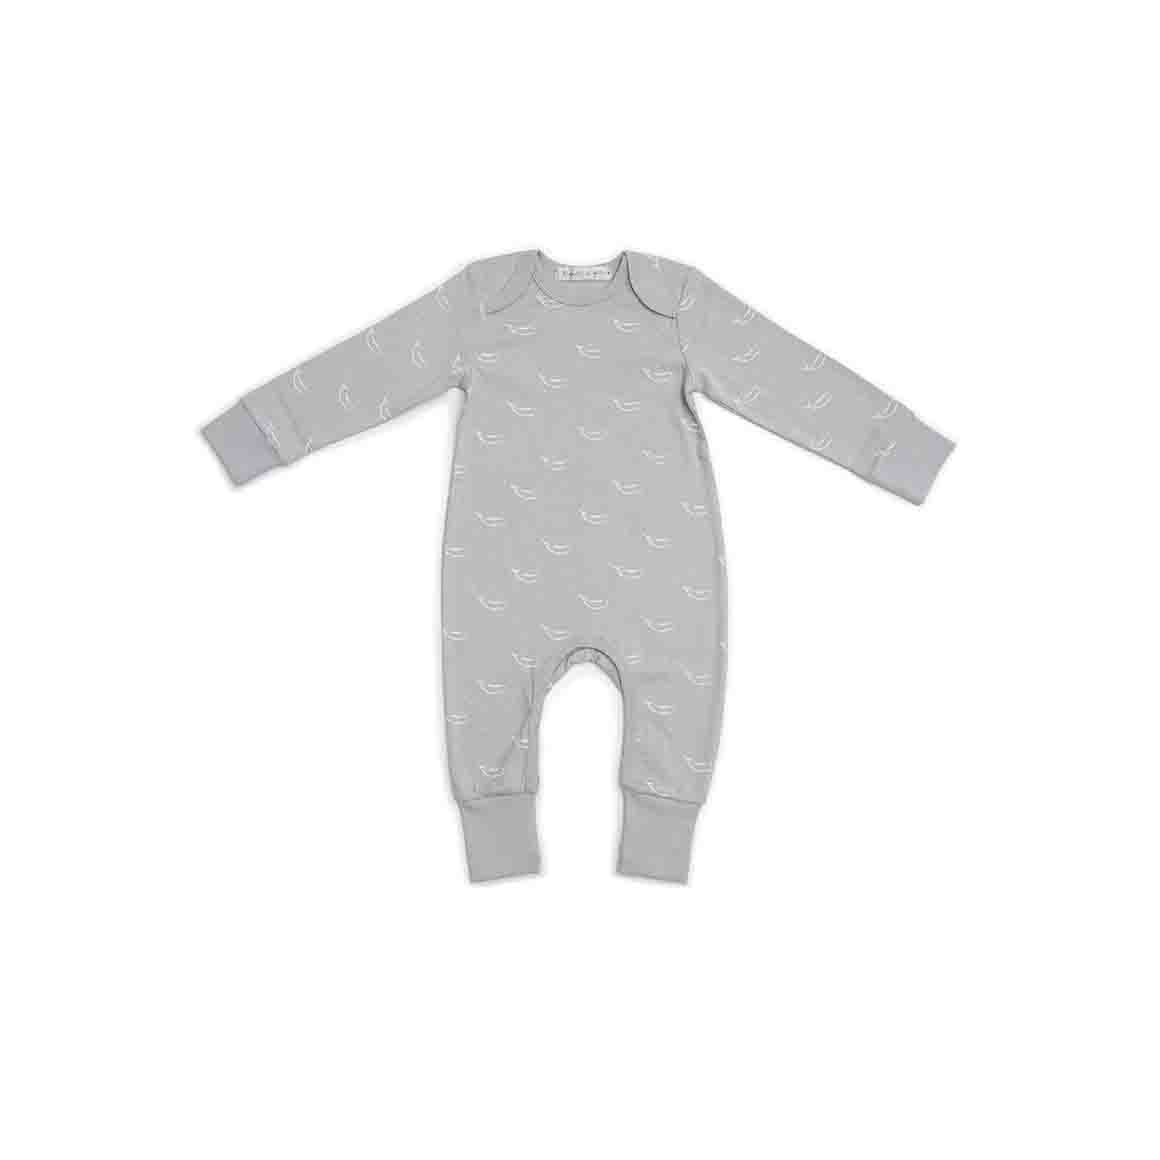 Baby Sleepsuit - Long Arm/Long Leg (Soft Stone Grey In Tiny Whales Print)   Trada Marketplace